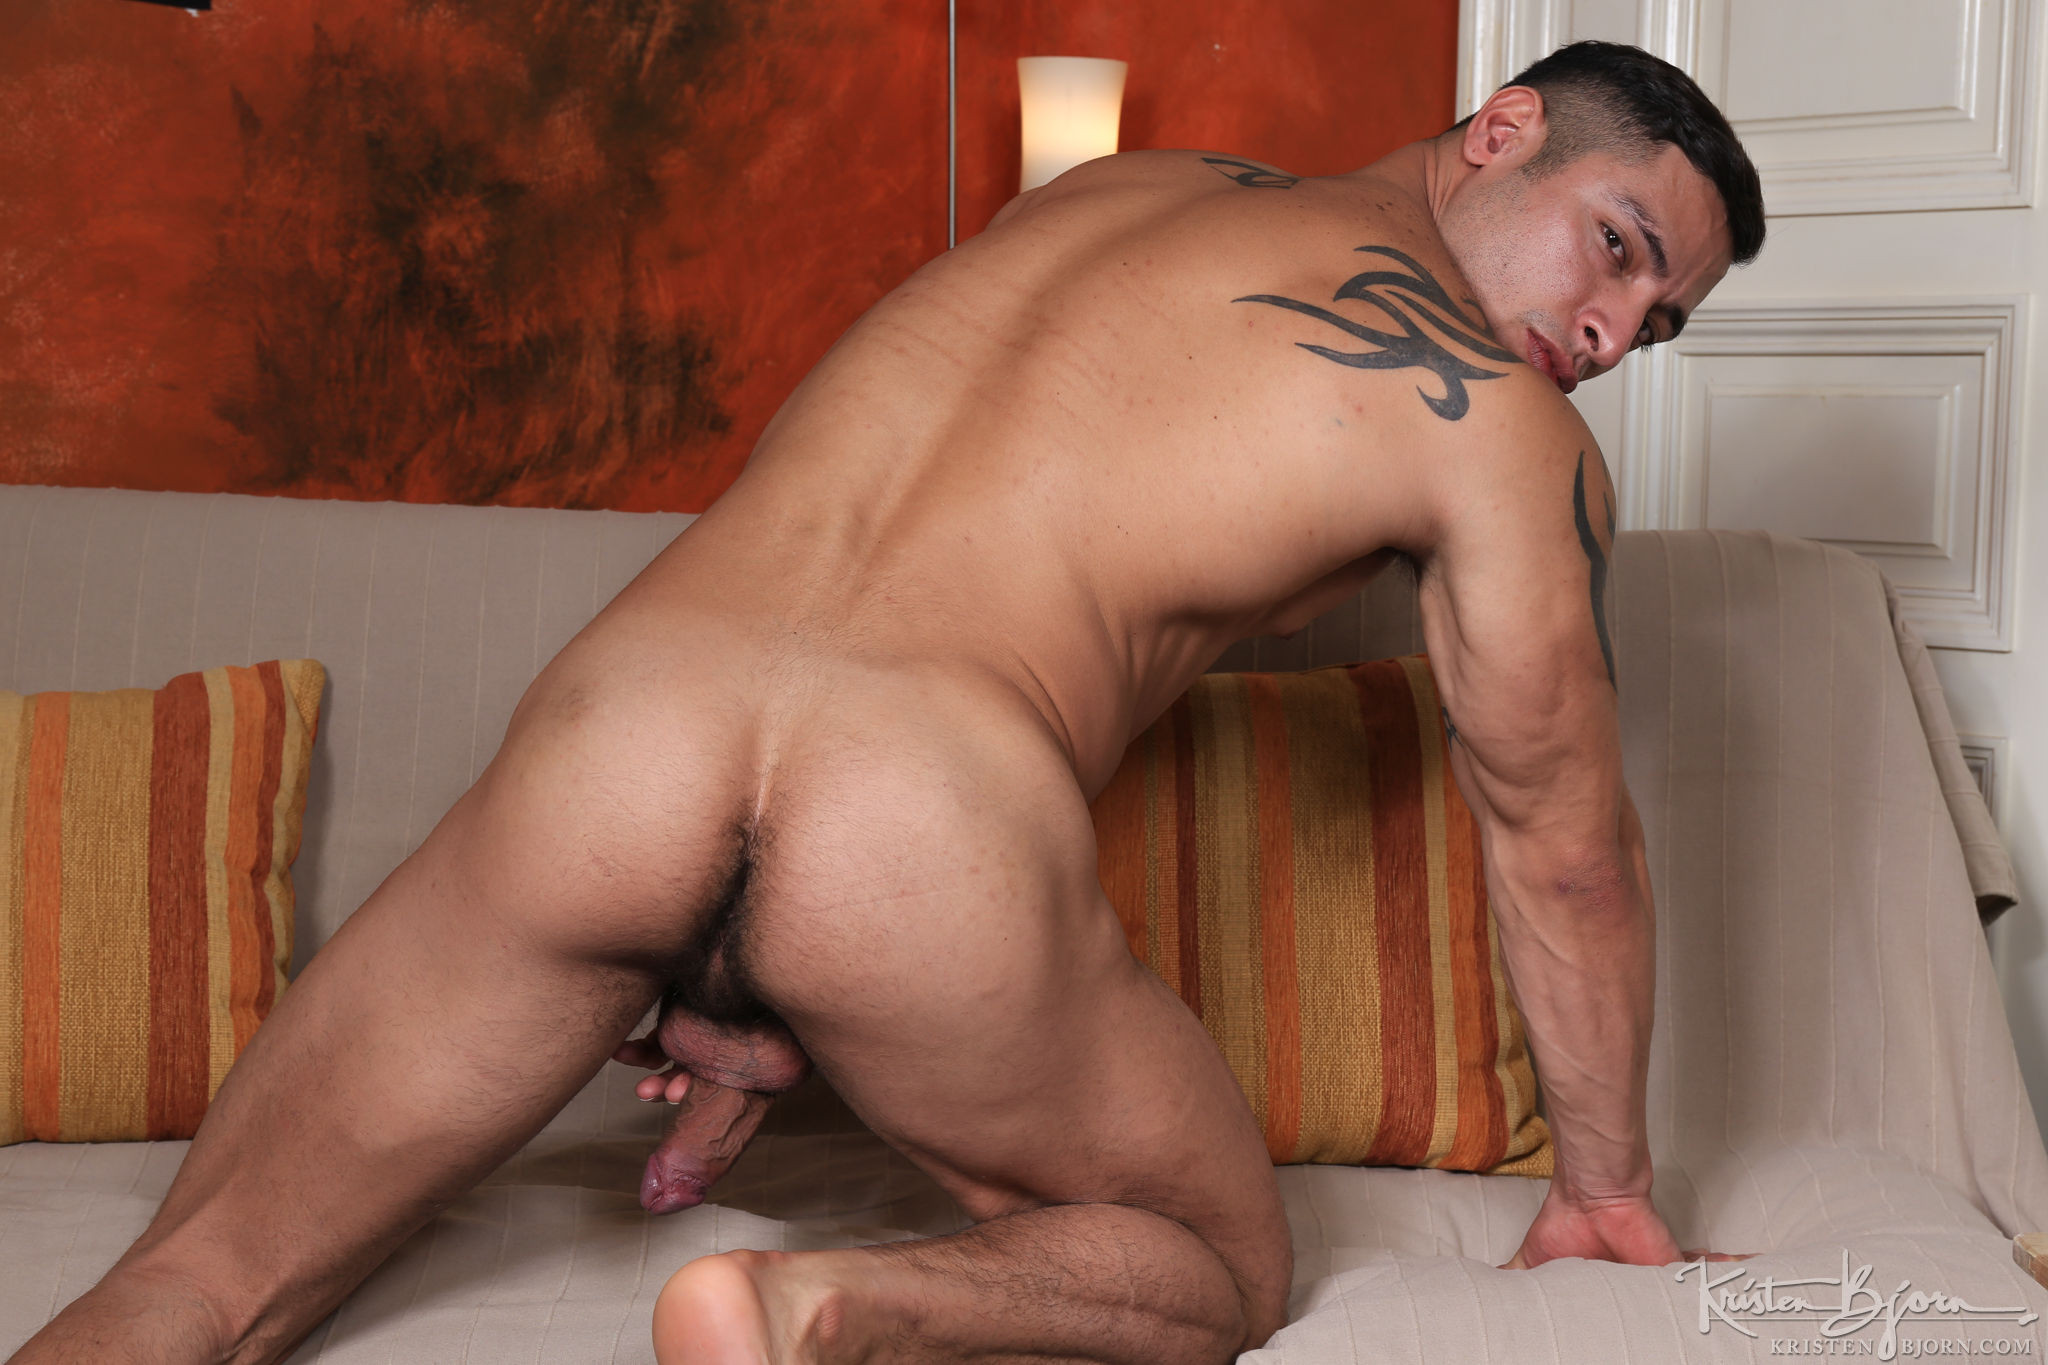 Teen boy bodybuilder hairy nude and boys 9